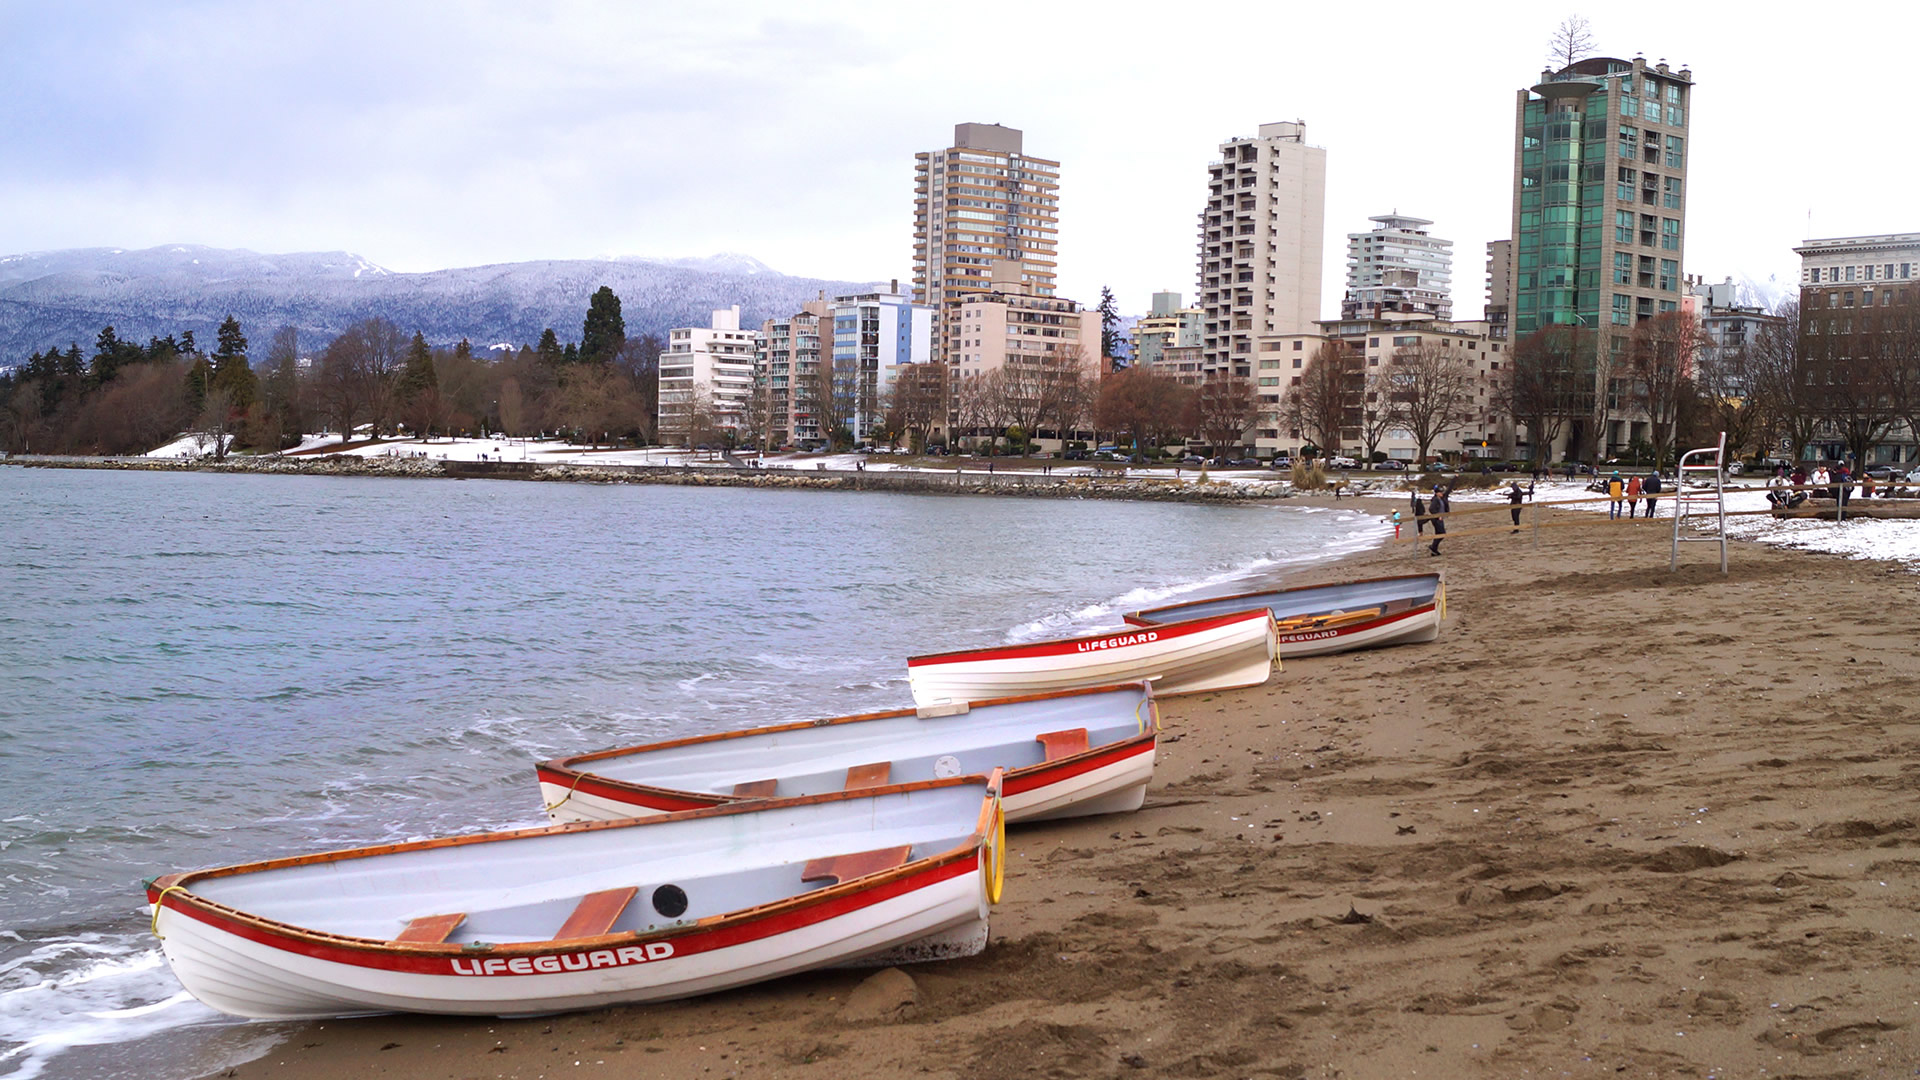 Westcoast-Lifeguard-Rowboat-credit-City-of-Vancouver-Whitehall-Rowing-and-Sail-5a